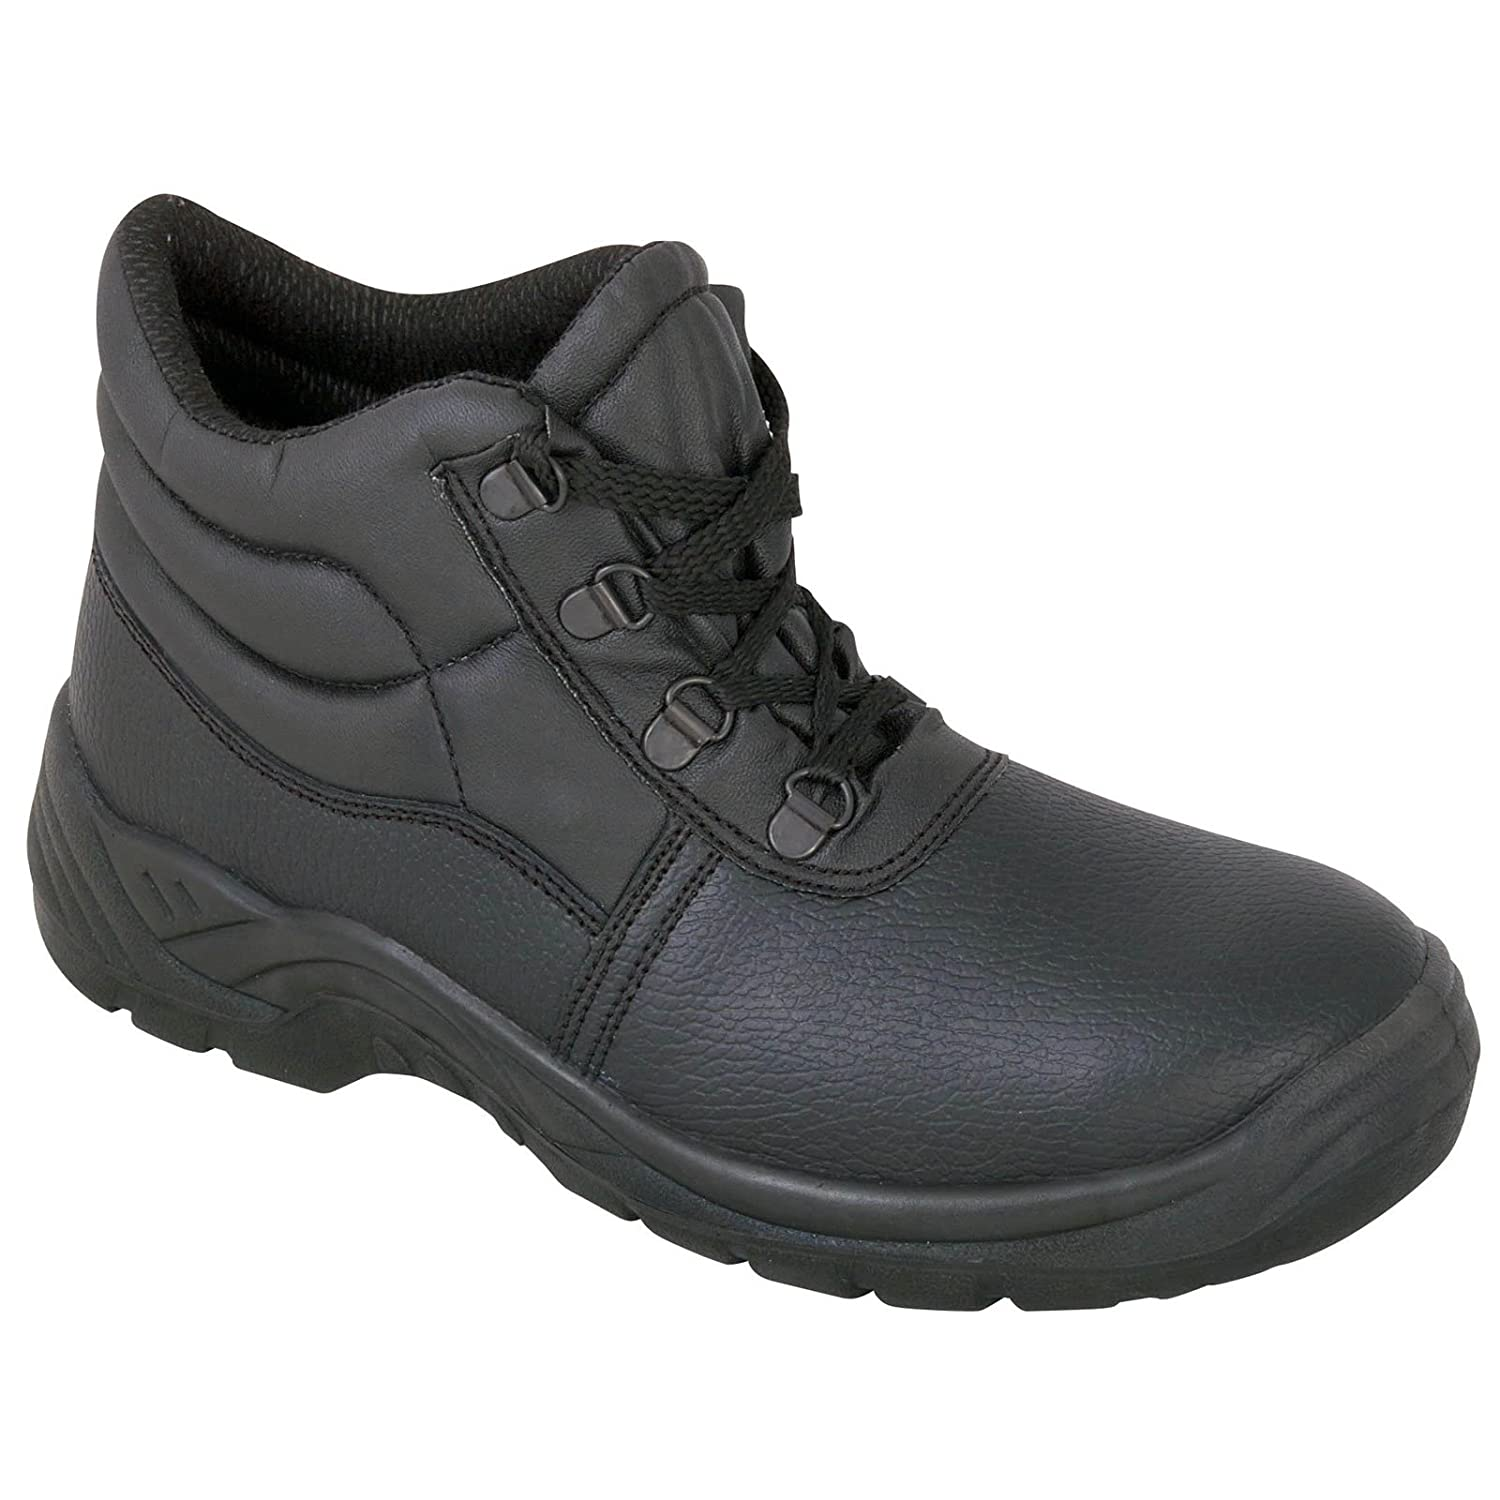 9bdc7ea9cb3 Safety Chukka Work Boots with Steel Toe Cap and Midsole Protection, Black